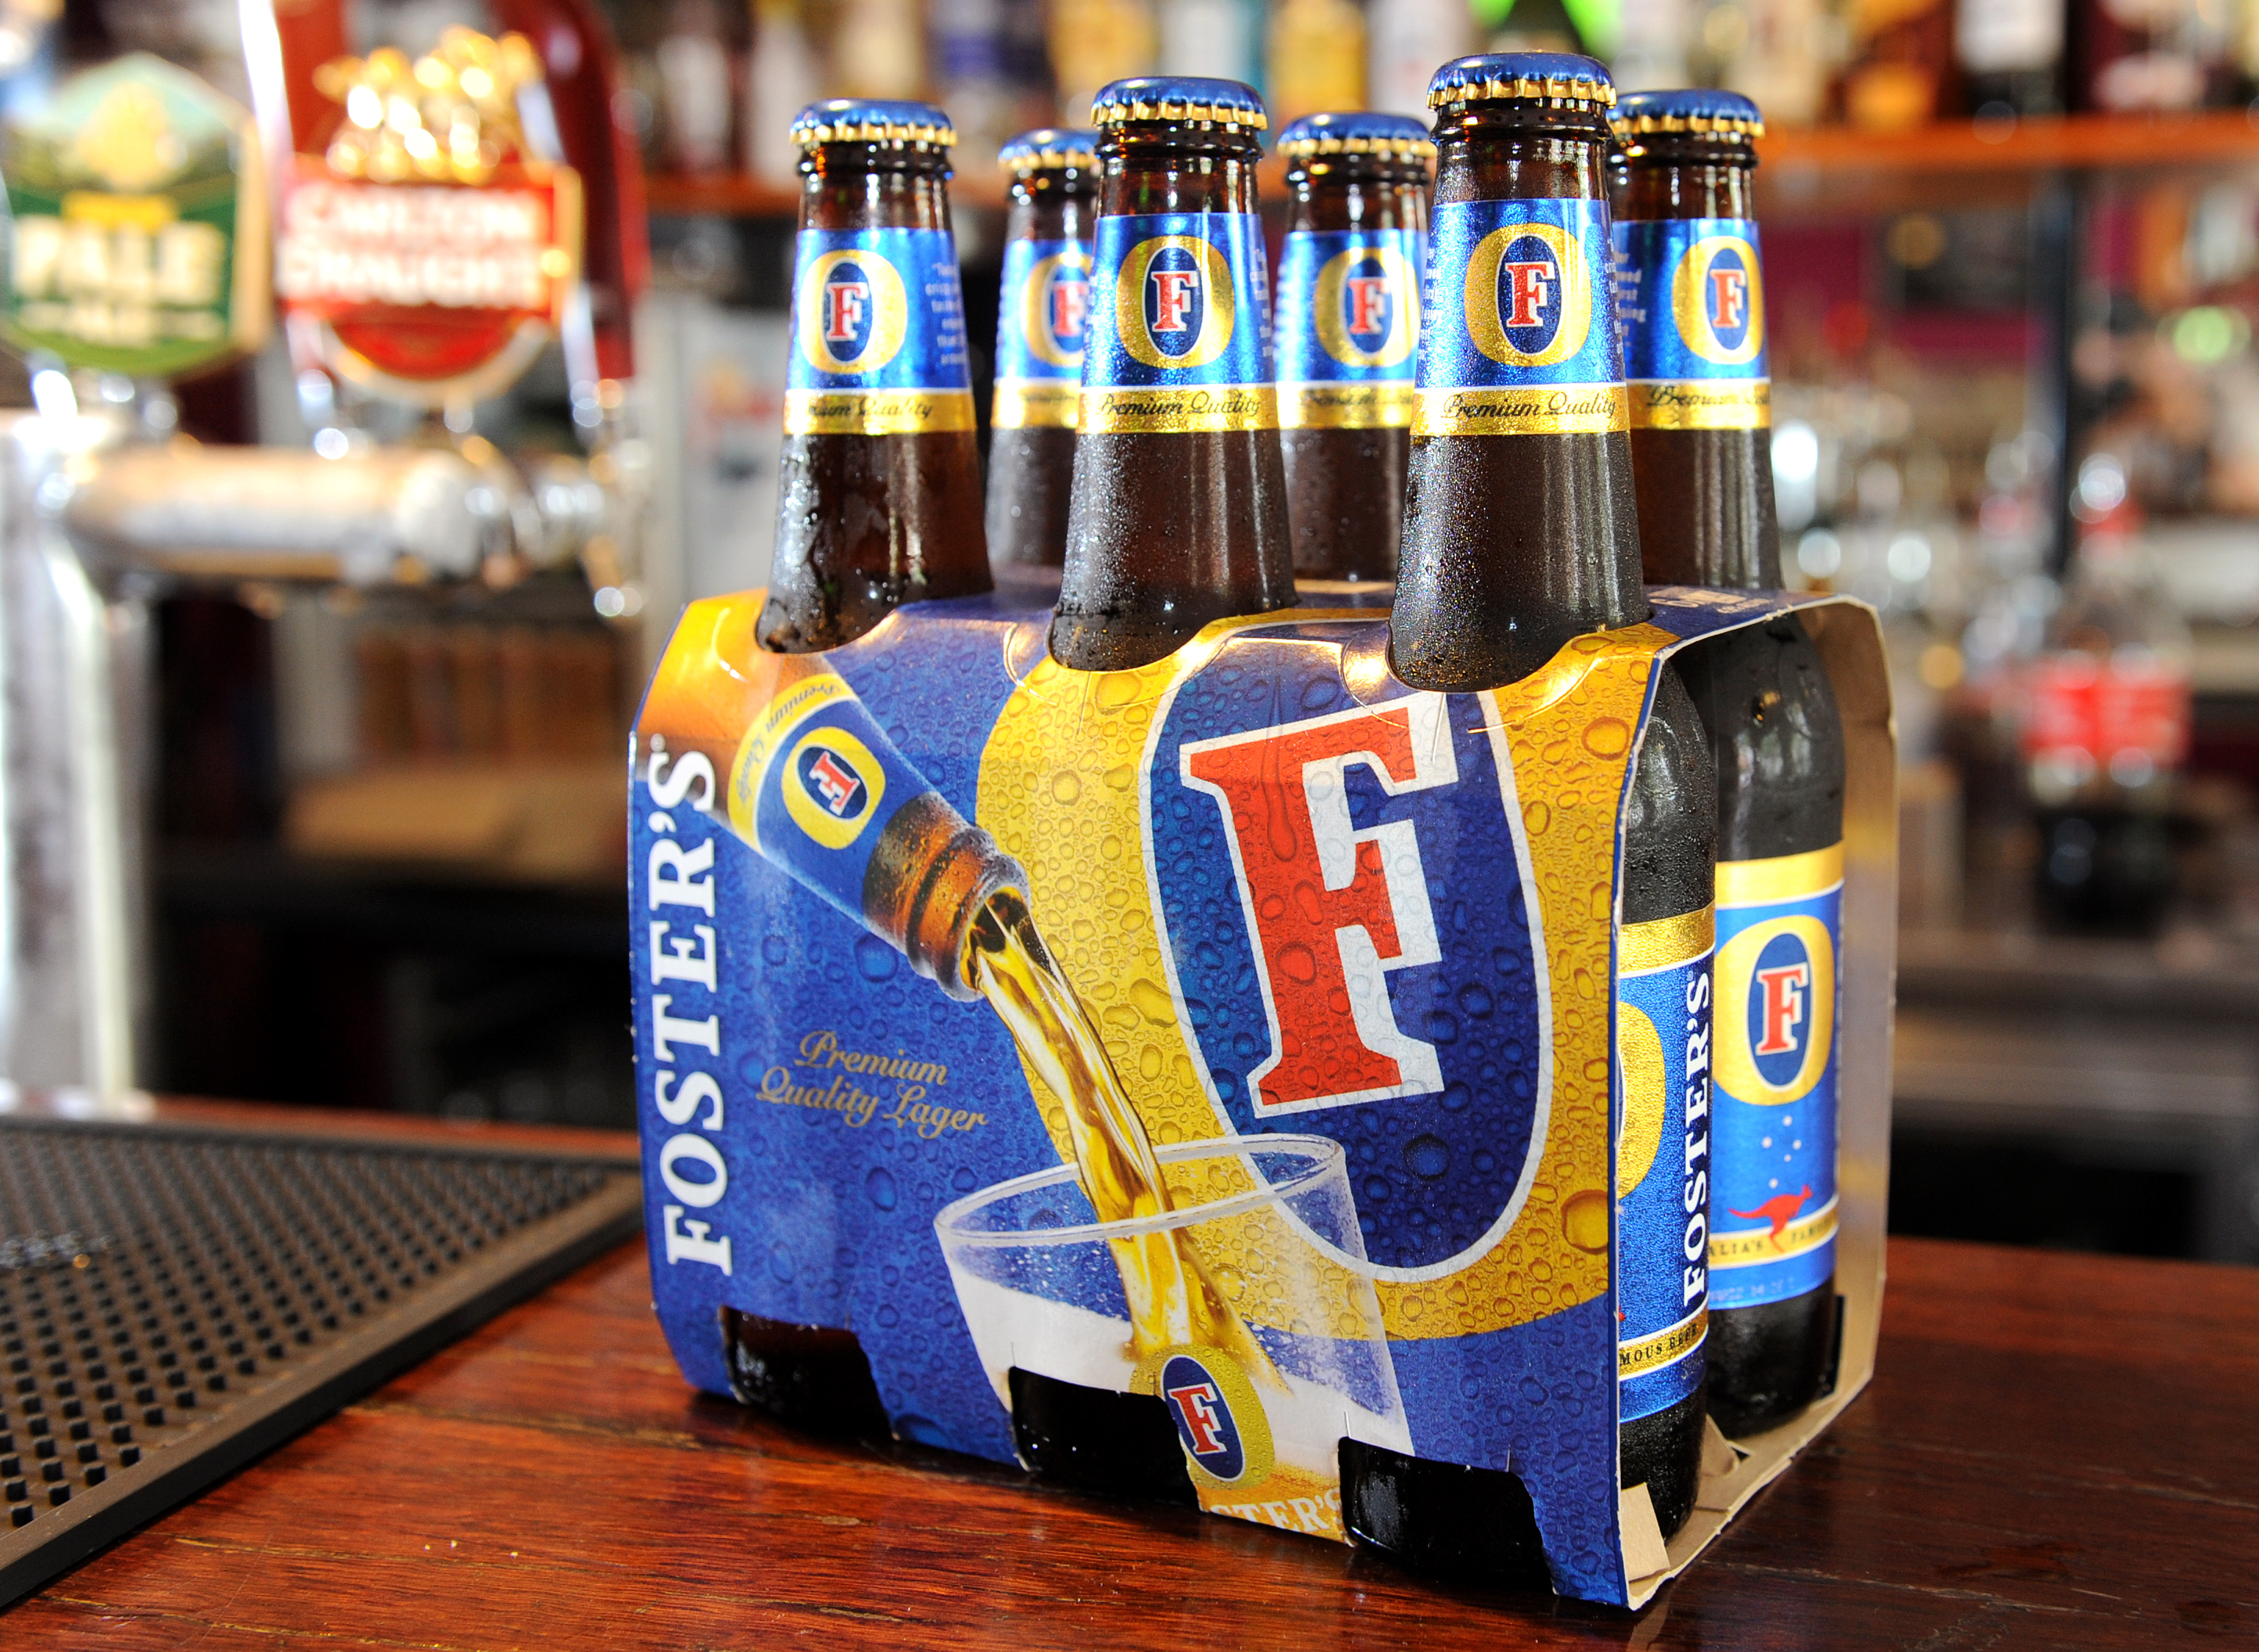 Bottles of Foster's beer sits on the bar at the Drop Bear Inn in South Melbourne on November 25, 2011.